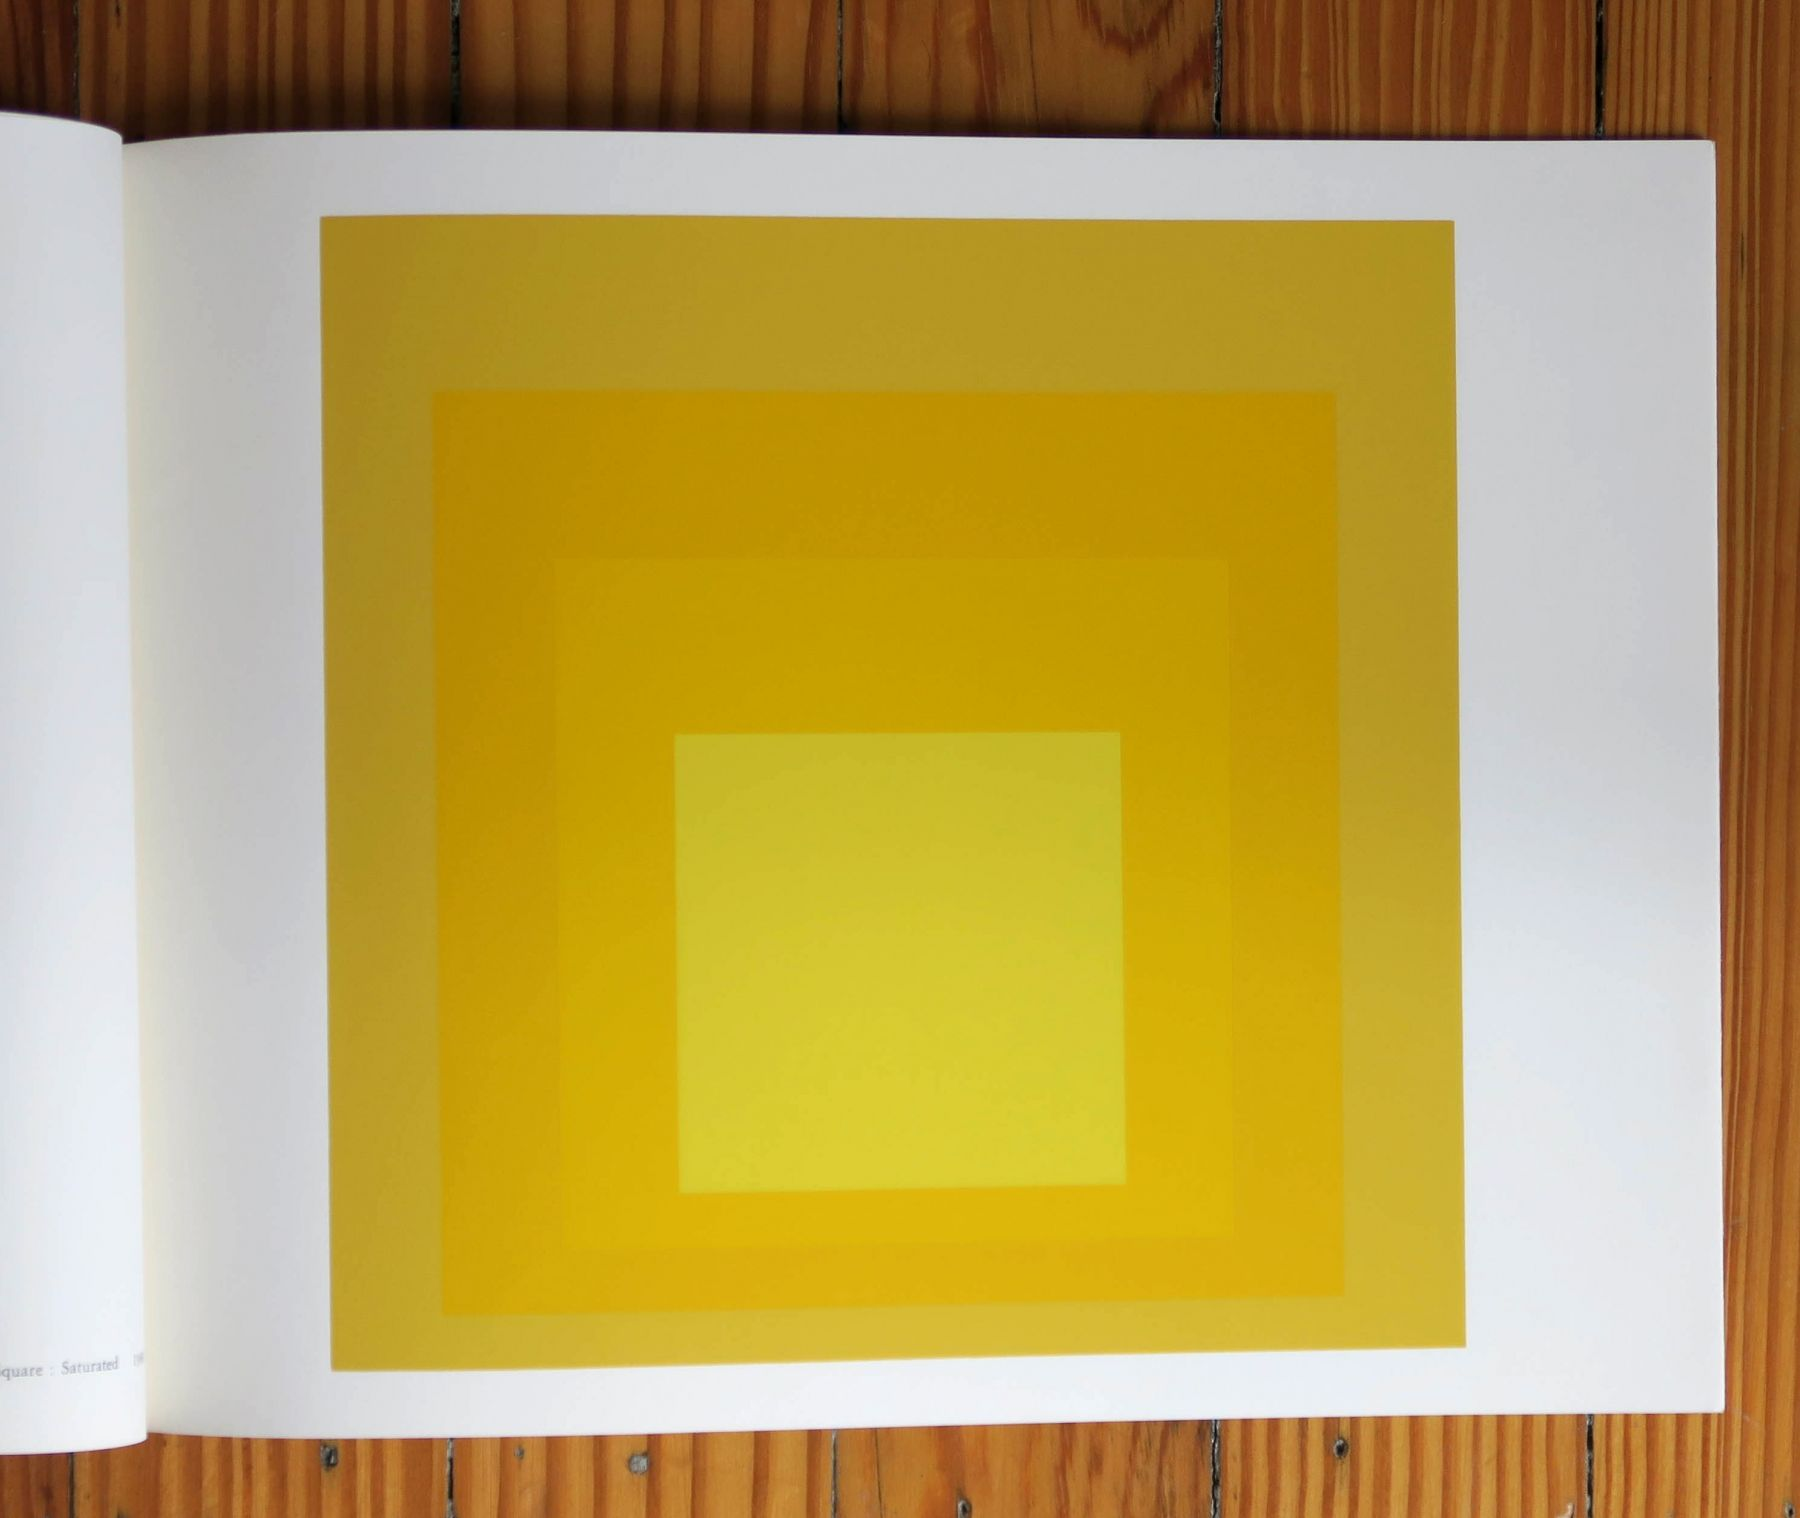 Alternate Projects, New Paintings by Josef Albers